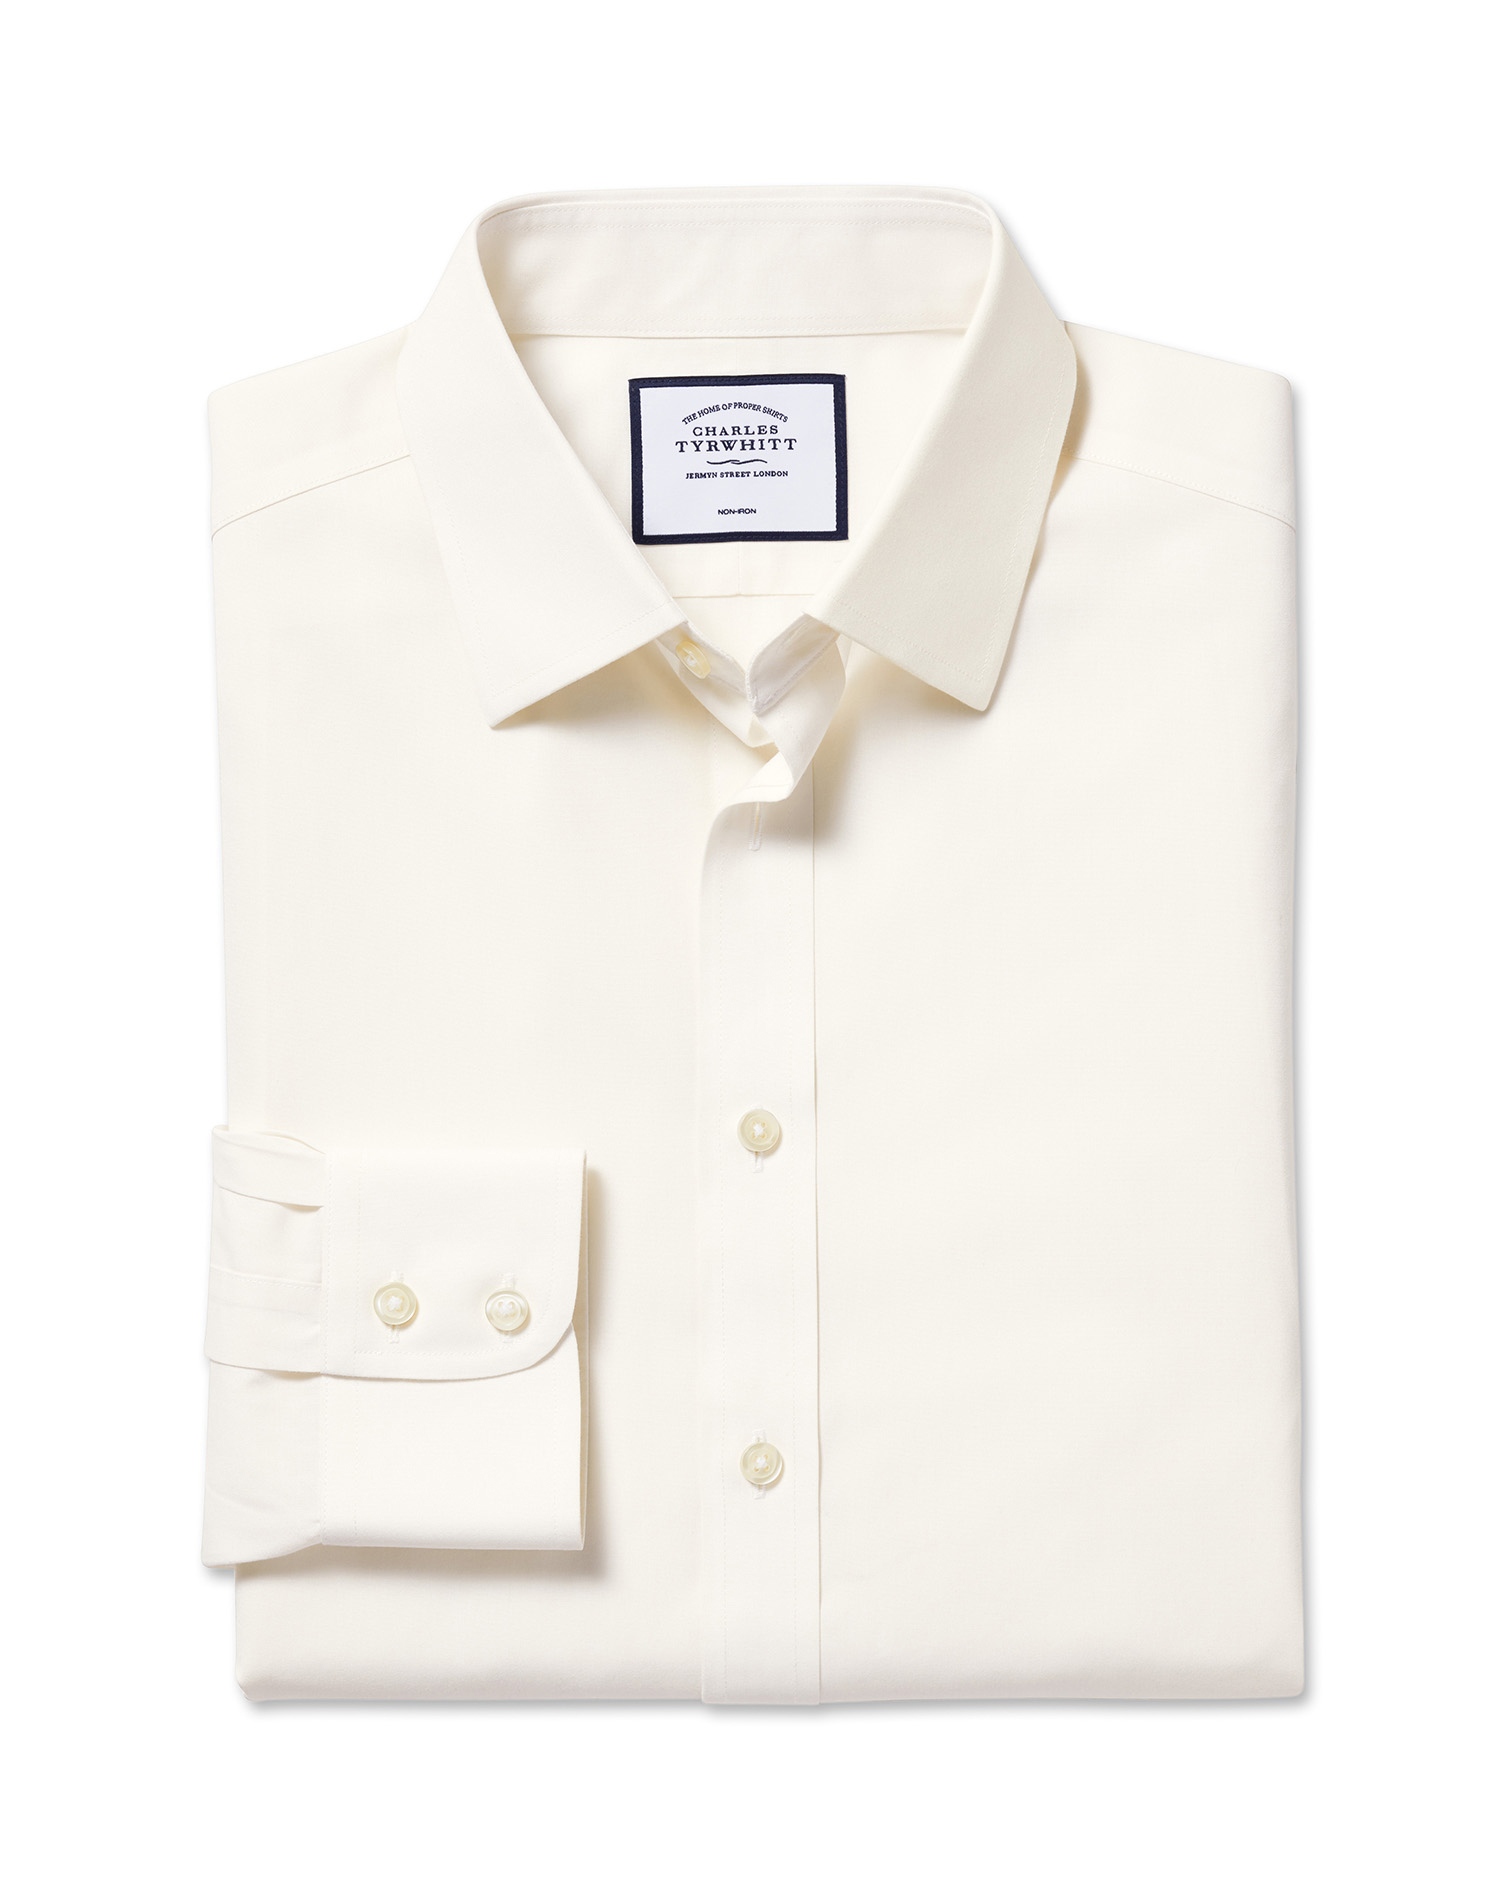 Classic Fit Cream Non-Iron Poplin Cotton Formal Shirt Double Cuff Size 16/33 by Charles Tyrwhitt